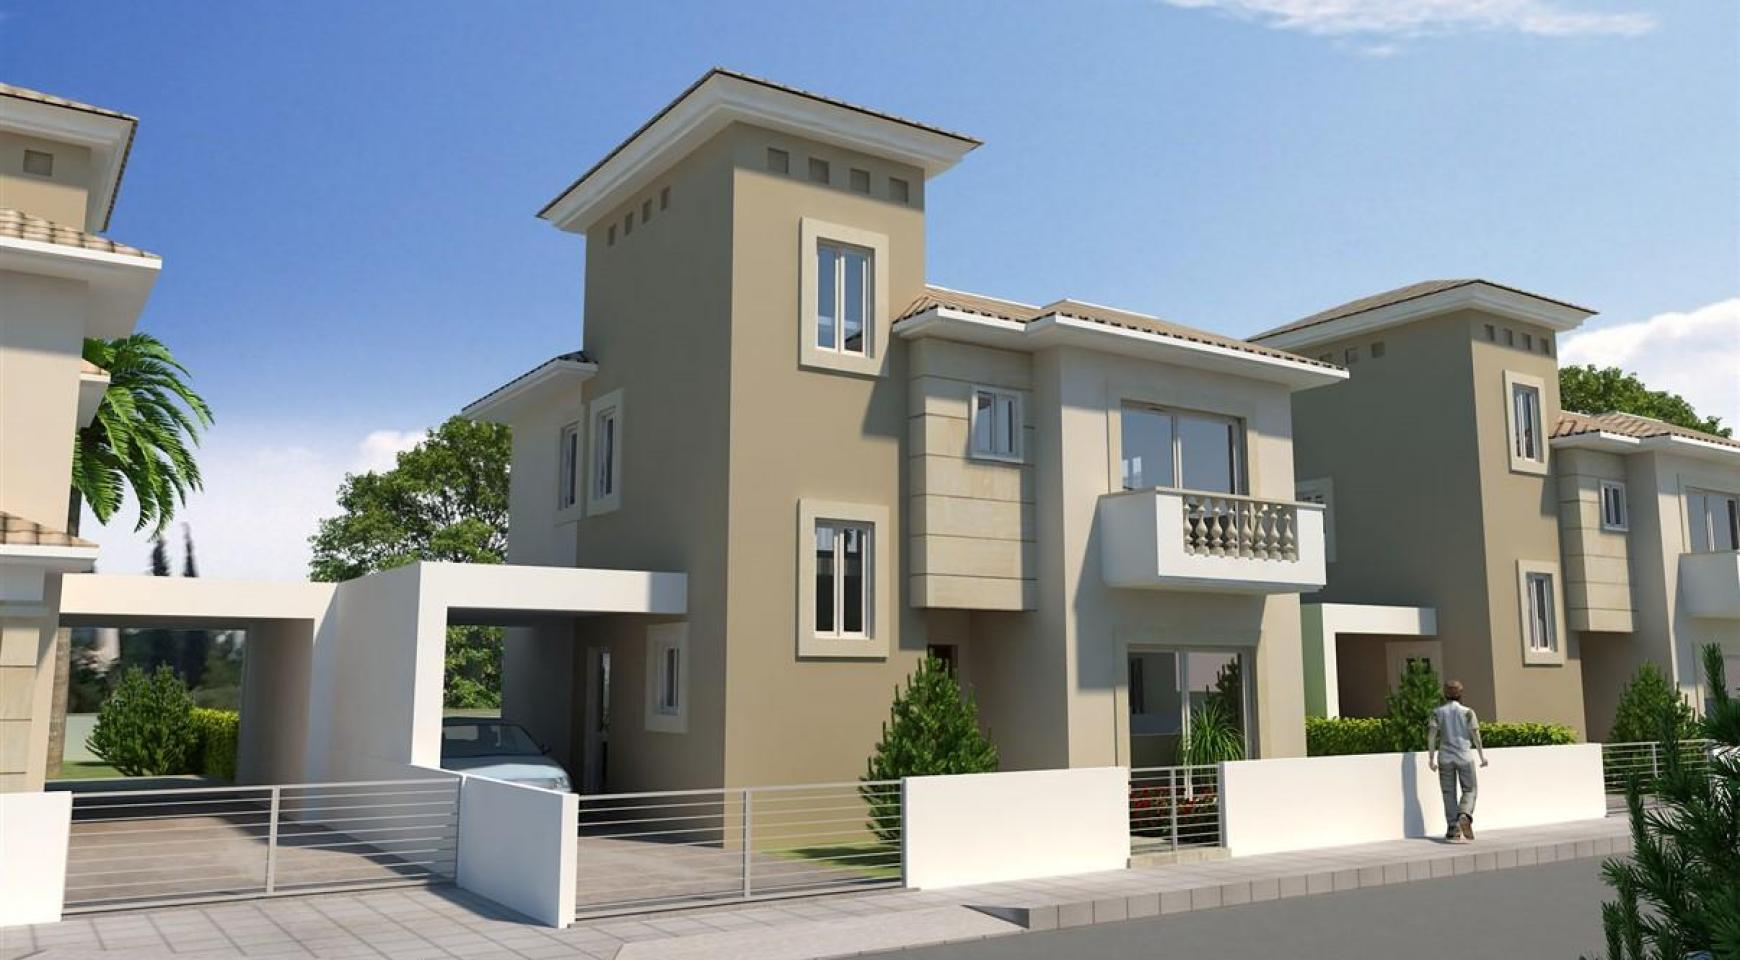 3 Bedroom Villa within a New Project - 14